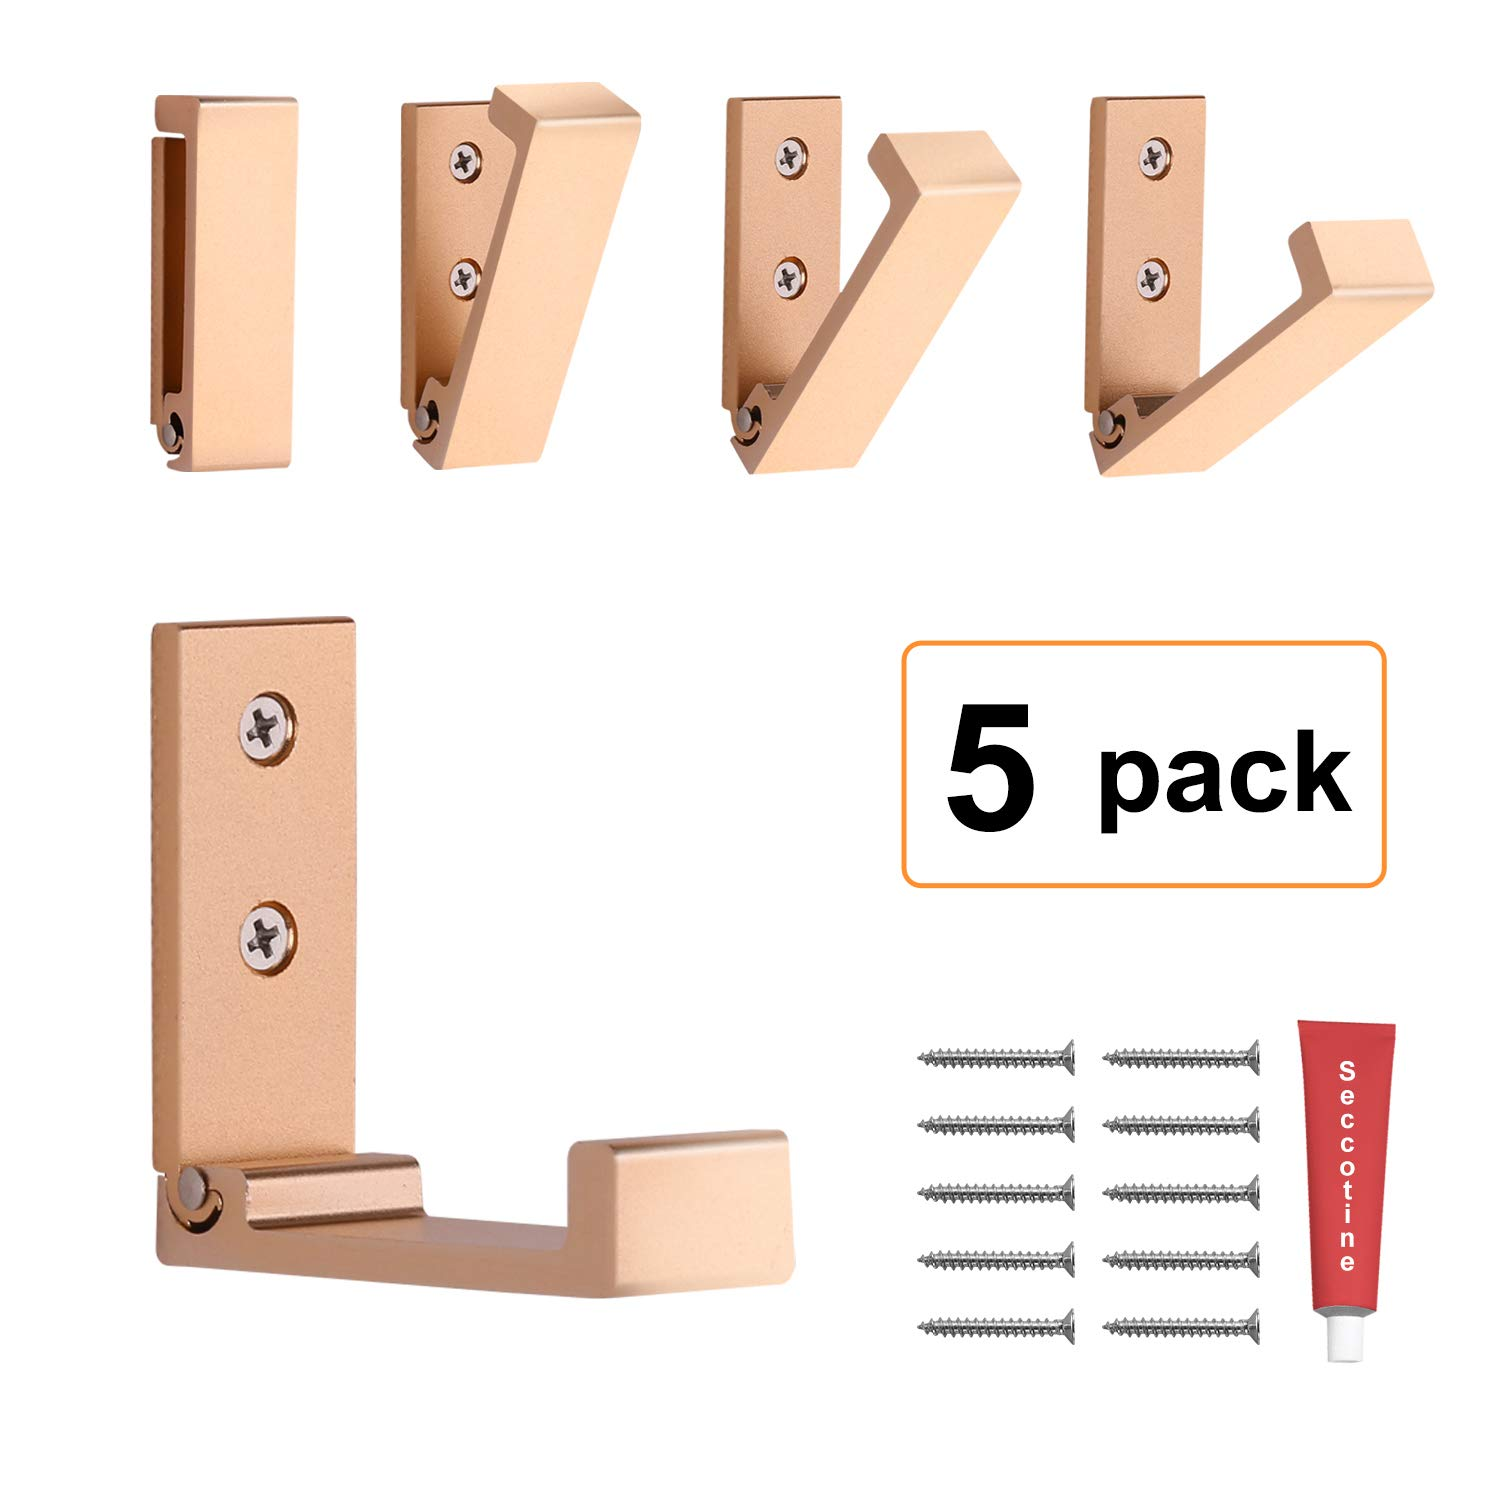 Foldable Adhesive Hooks,Heavy Duty Wall Hooks Stainless Steel Ultra Strong Waterproof Hanger for Robe, Coat, Towel, Keys, Bags, Home, Kitchen, Bathroom (Set of 5) (Gold)